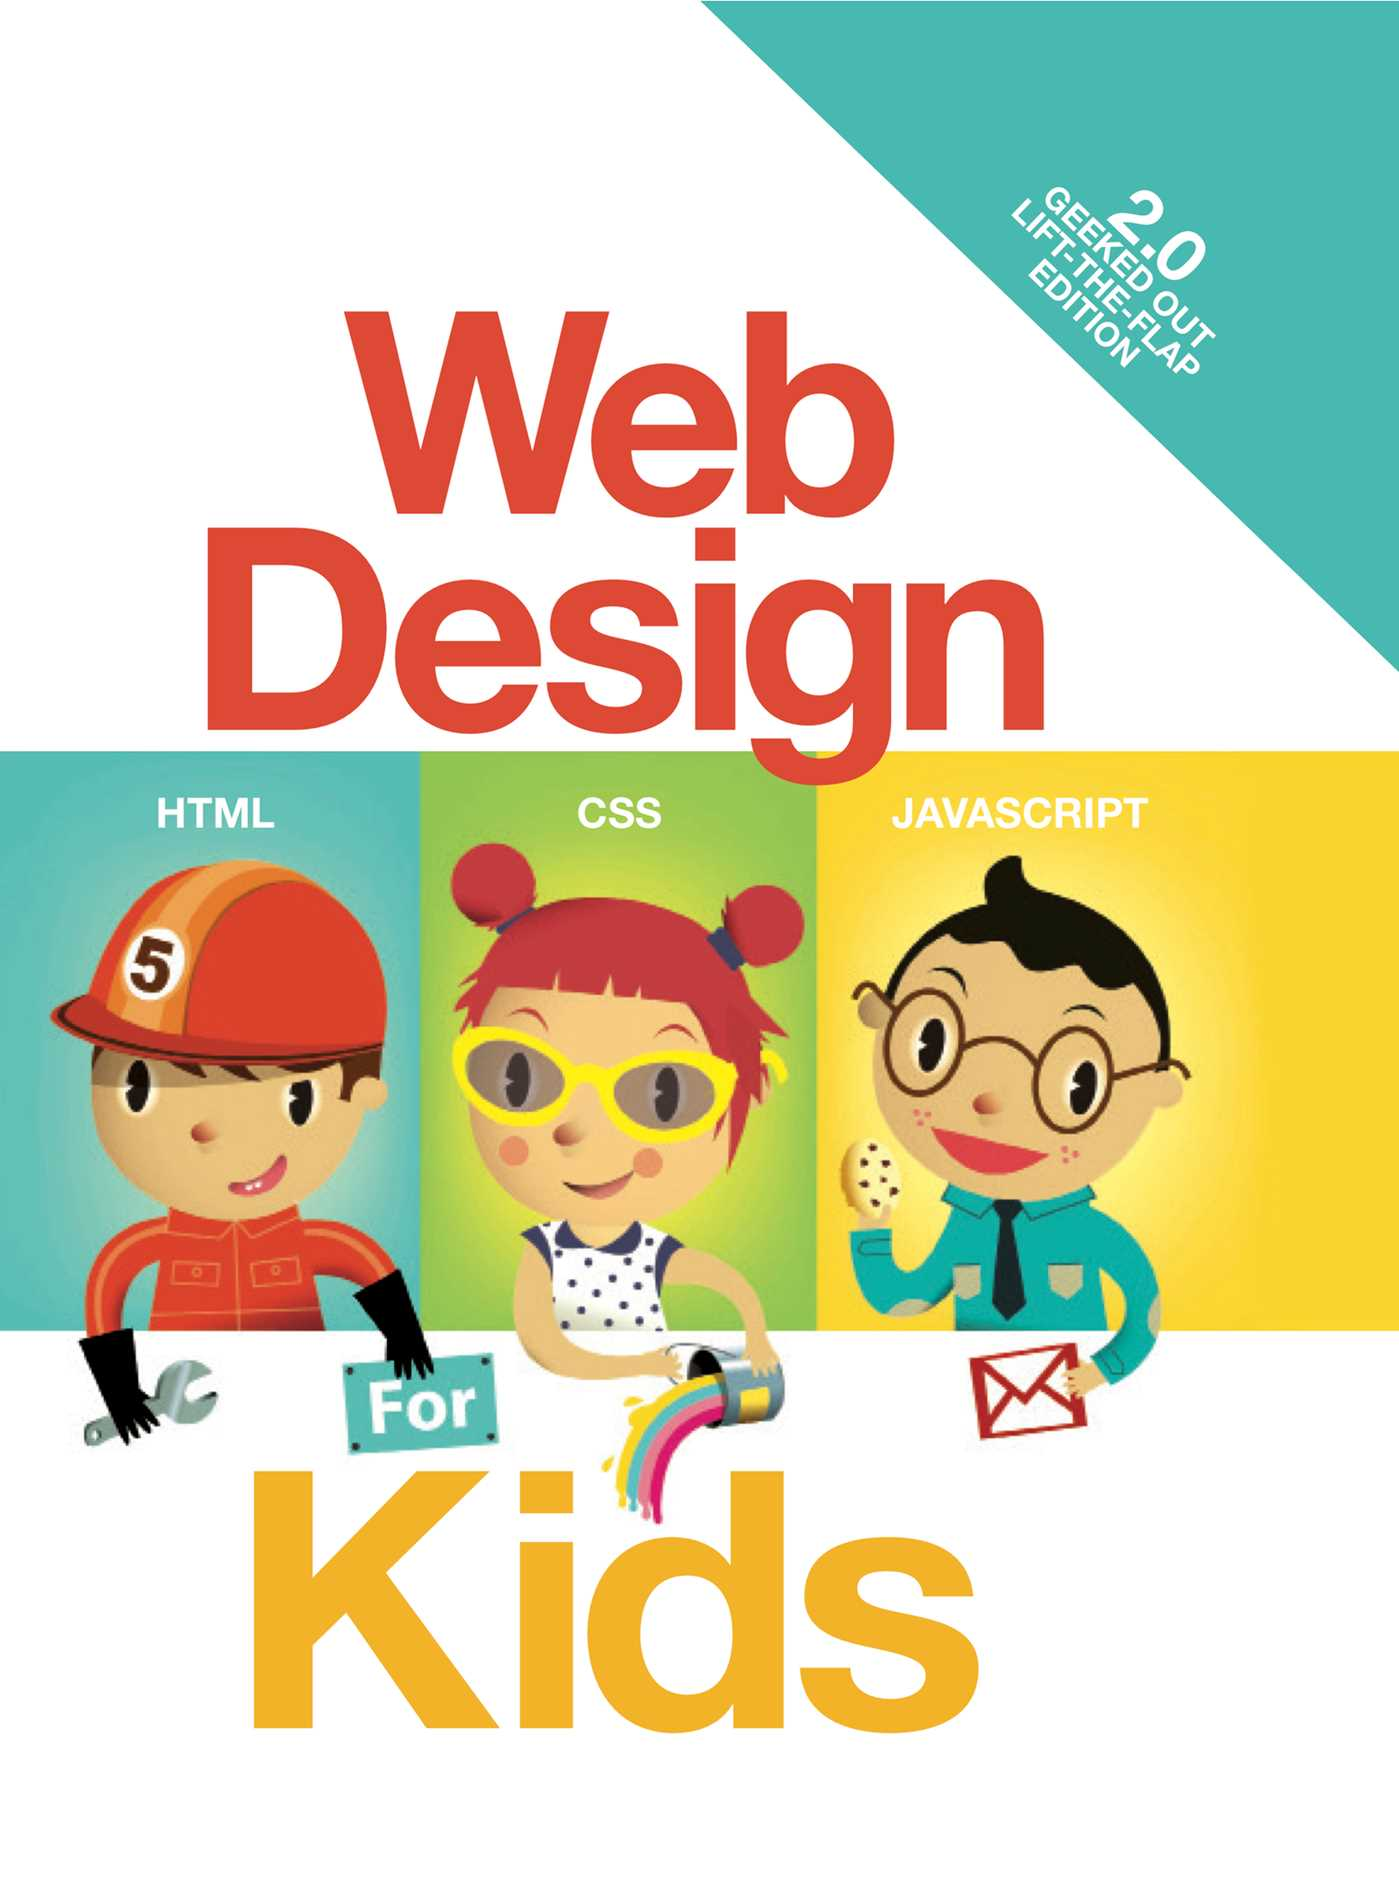 Book Cover Design Websites : Web design for kids book by john c vanden heuvel sr